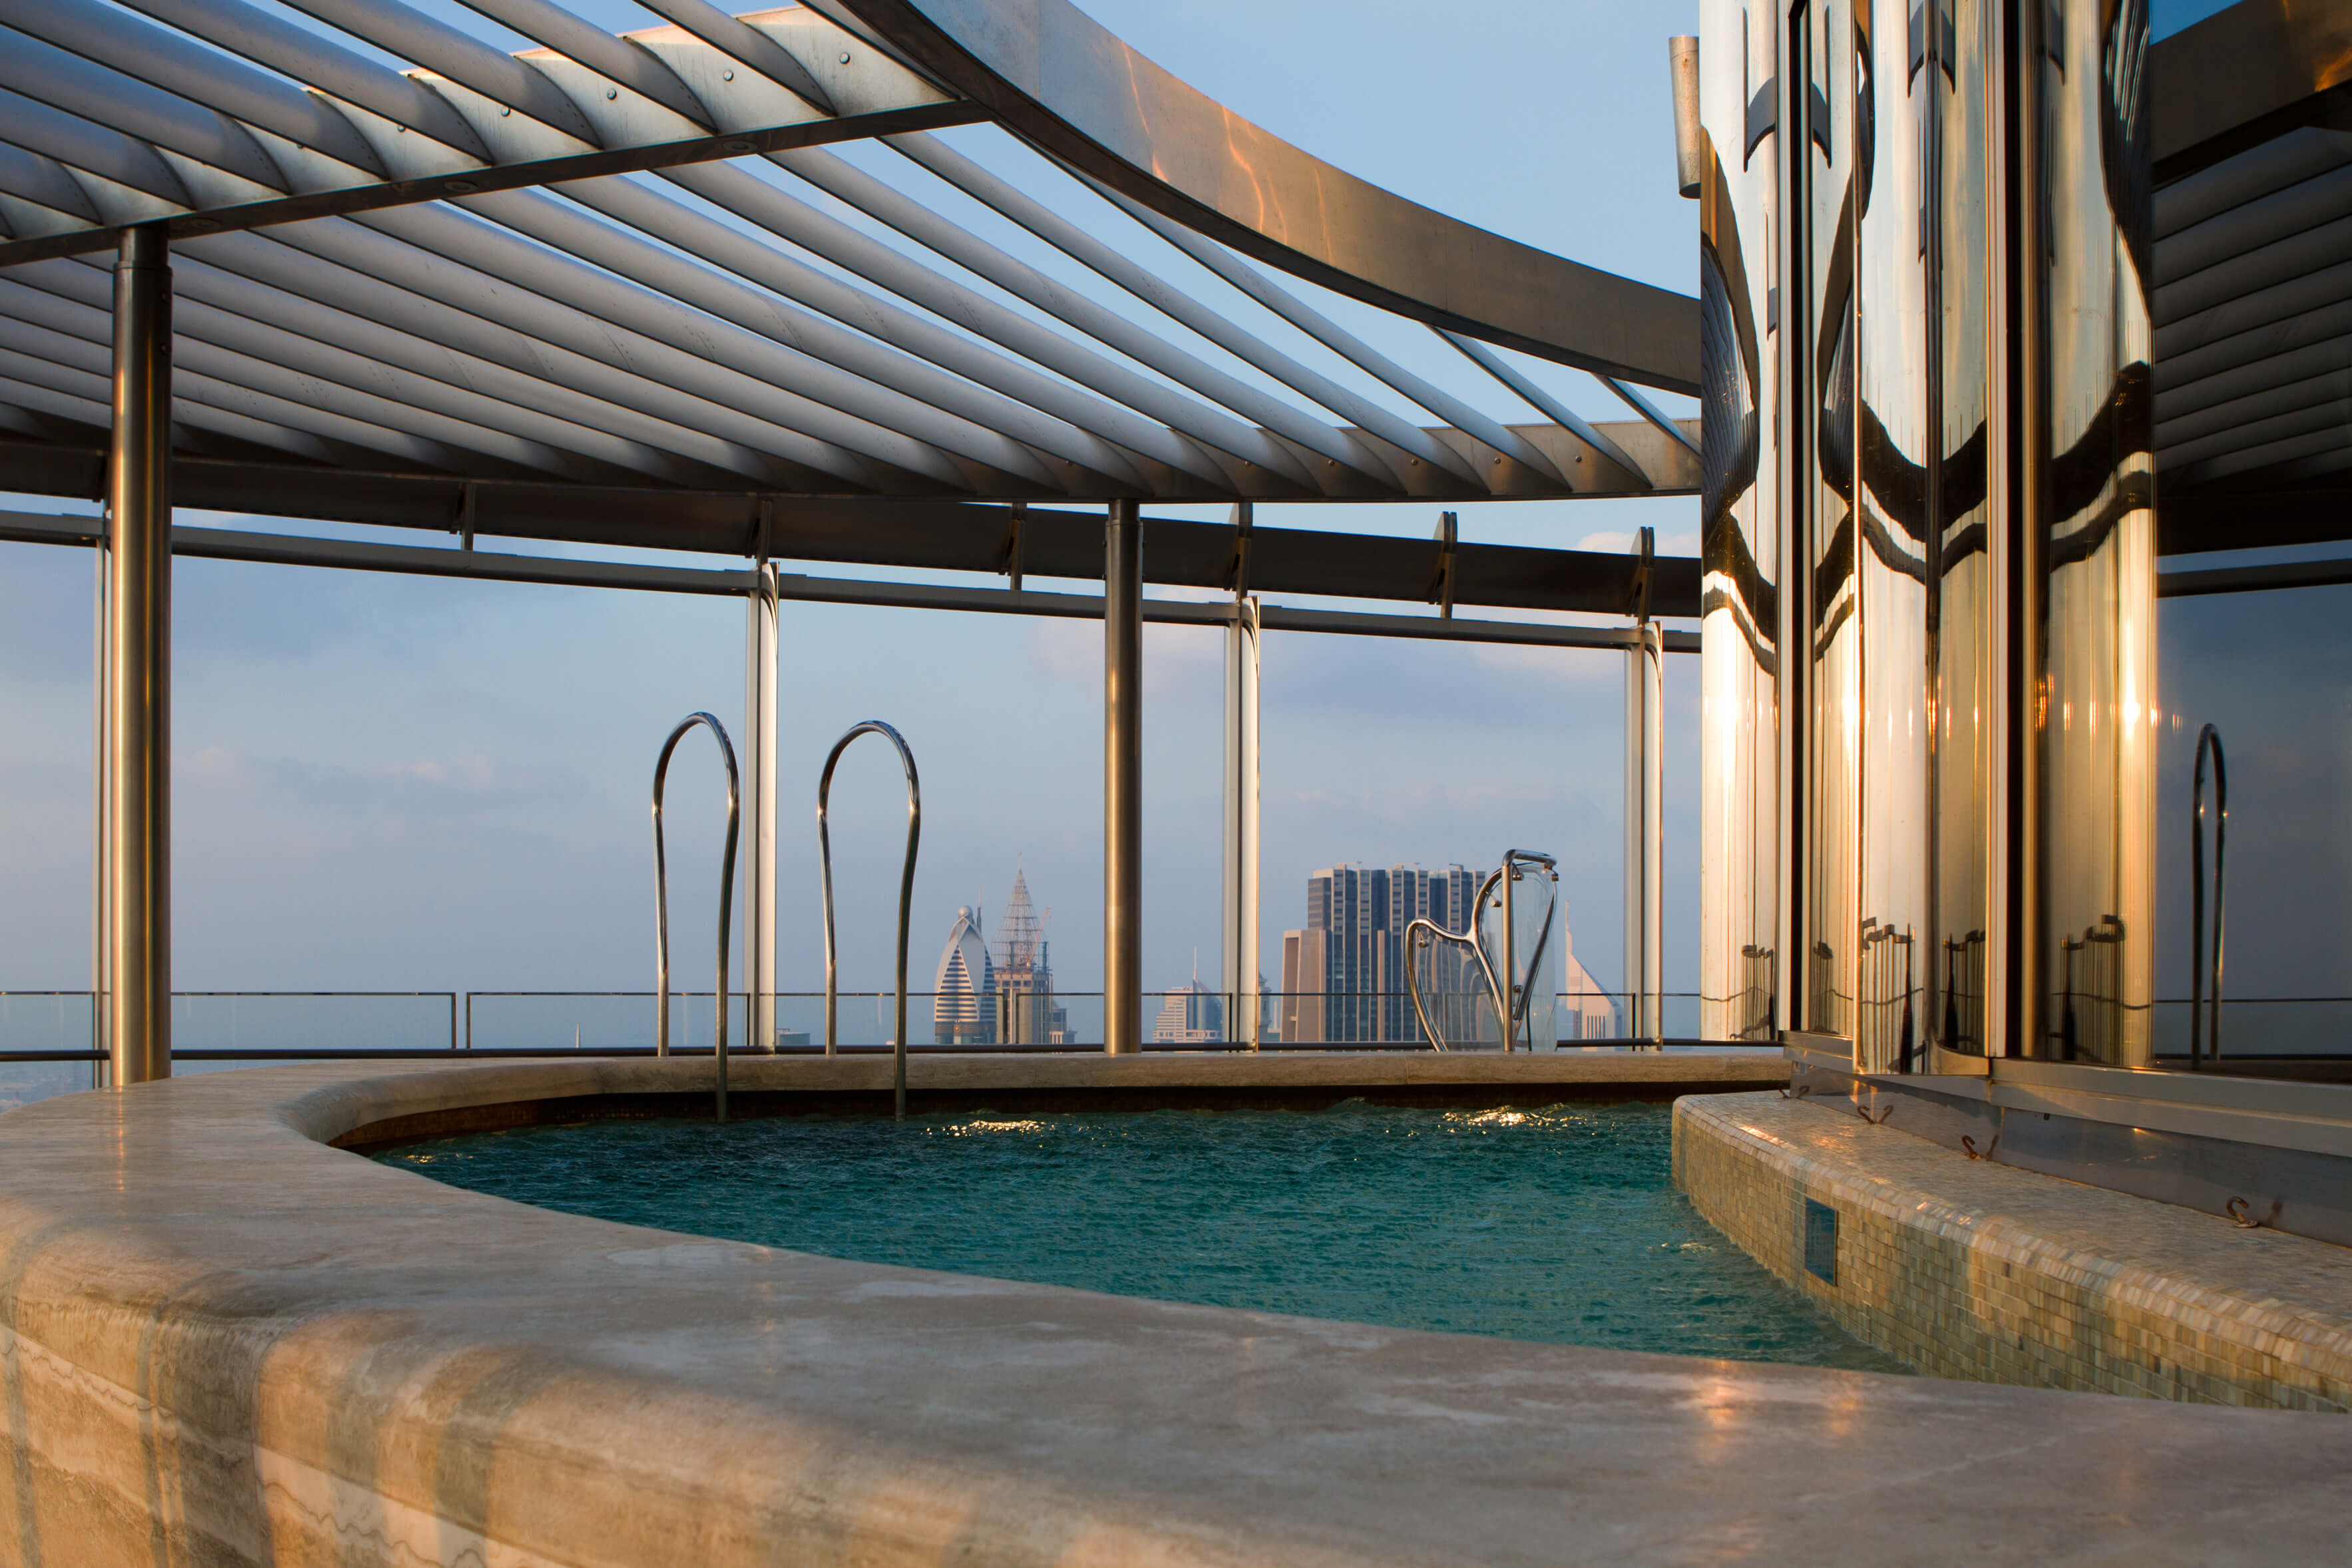 Top 10 highest pools in the world for Burj khalifa swimming pool 76th floor